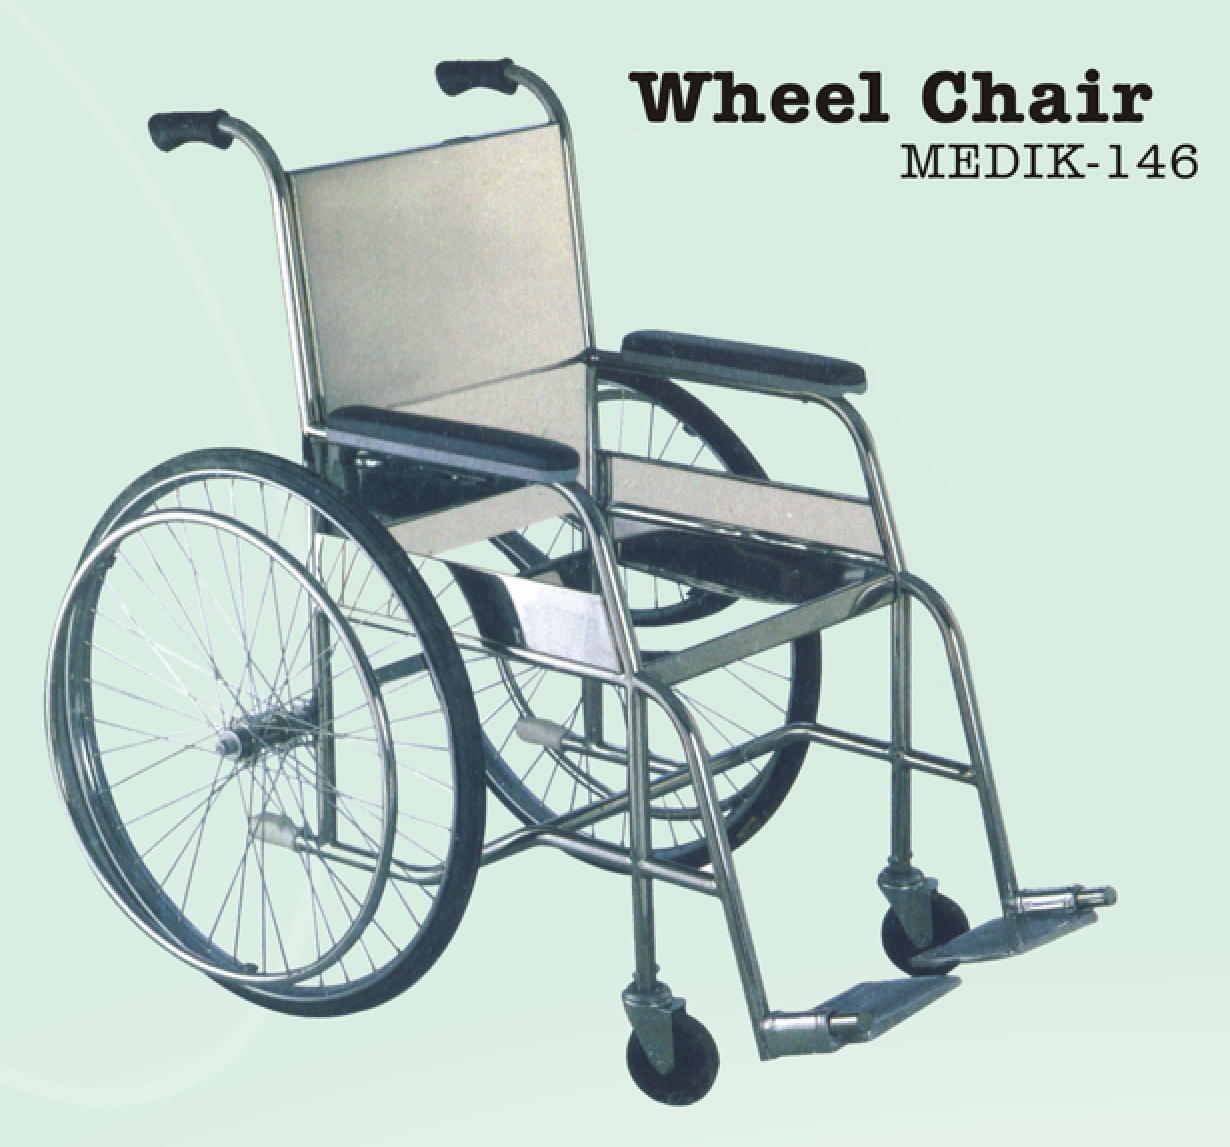 Wheel Chair MEDIK 146